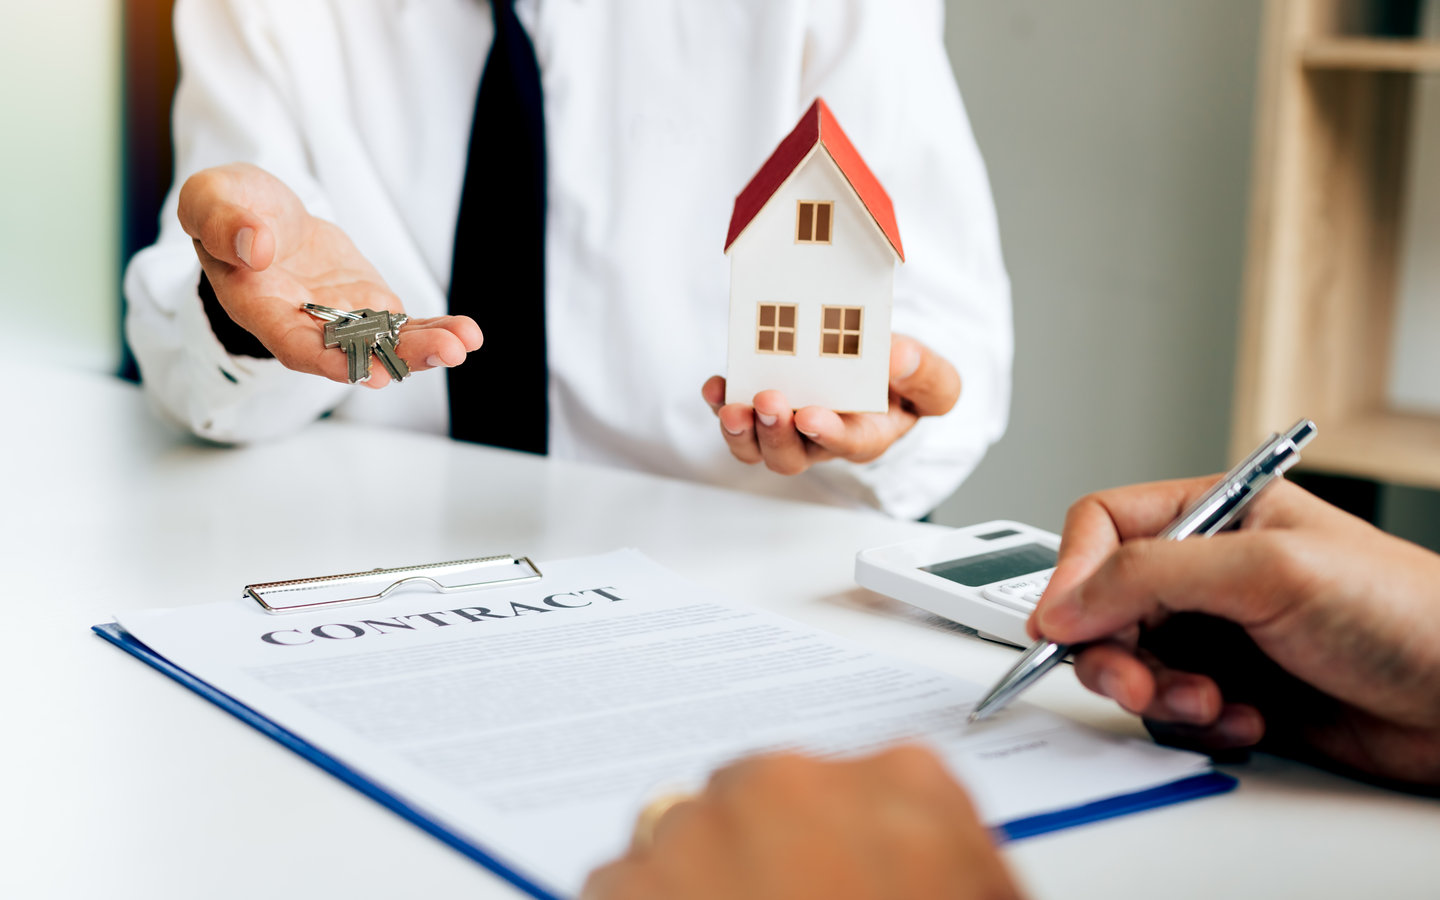 7 Steps To Successful Goal Setting For Real Estate Agents - MyBayut